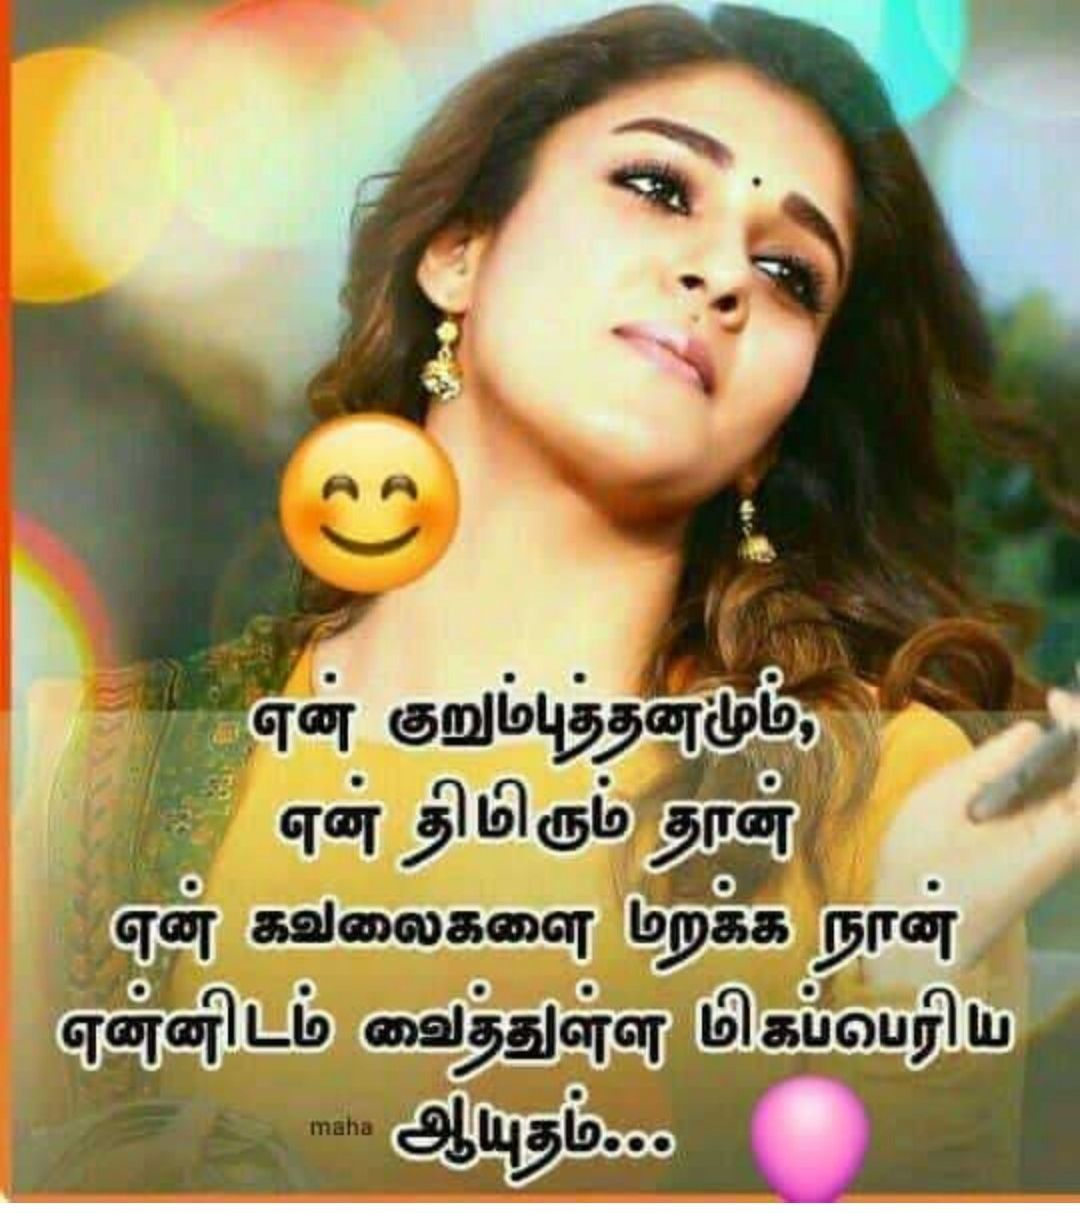 Whatsapp Dp Images In Tamil Free Download Hd Good Thoughts Quotes Strong Girl Quotes Single Girl Quotes